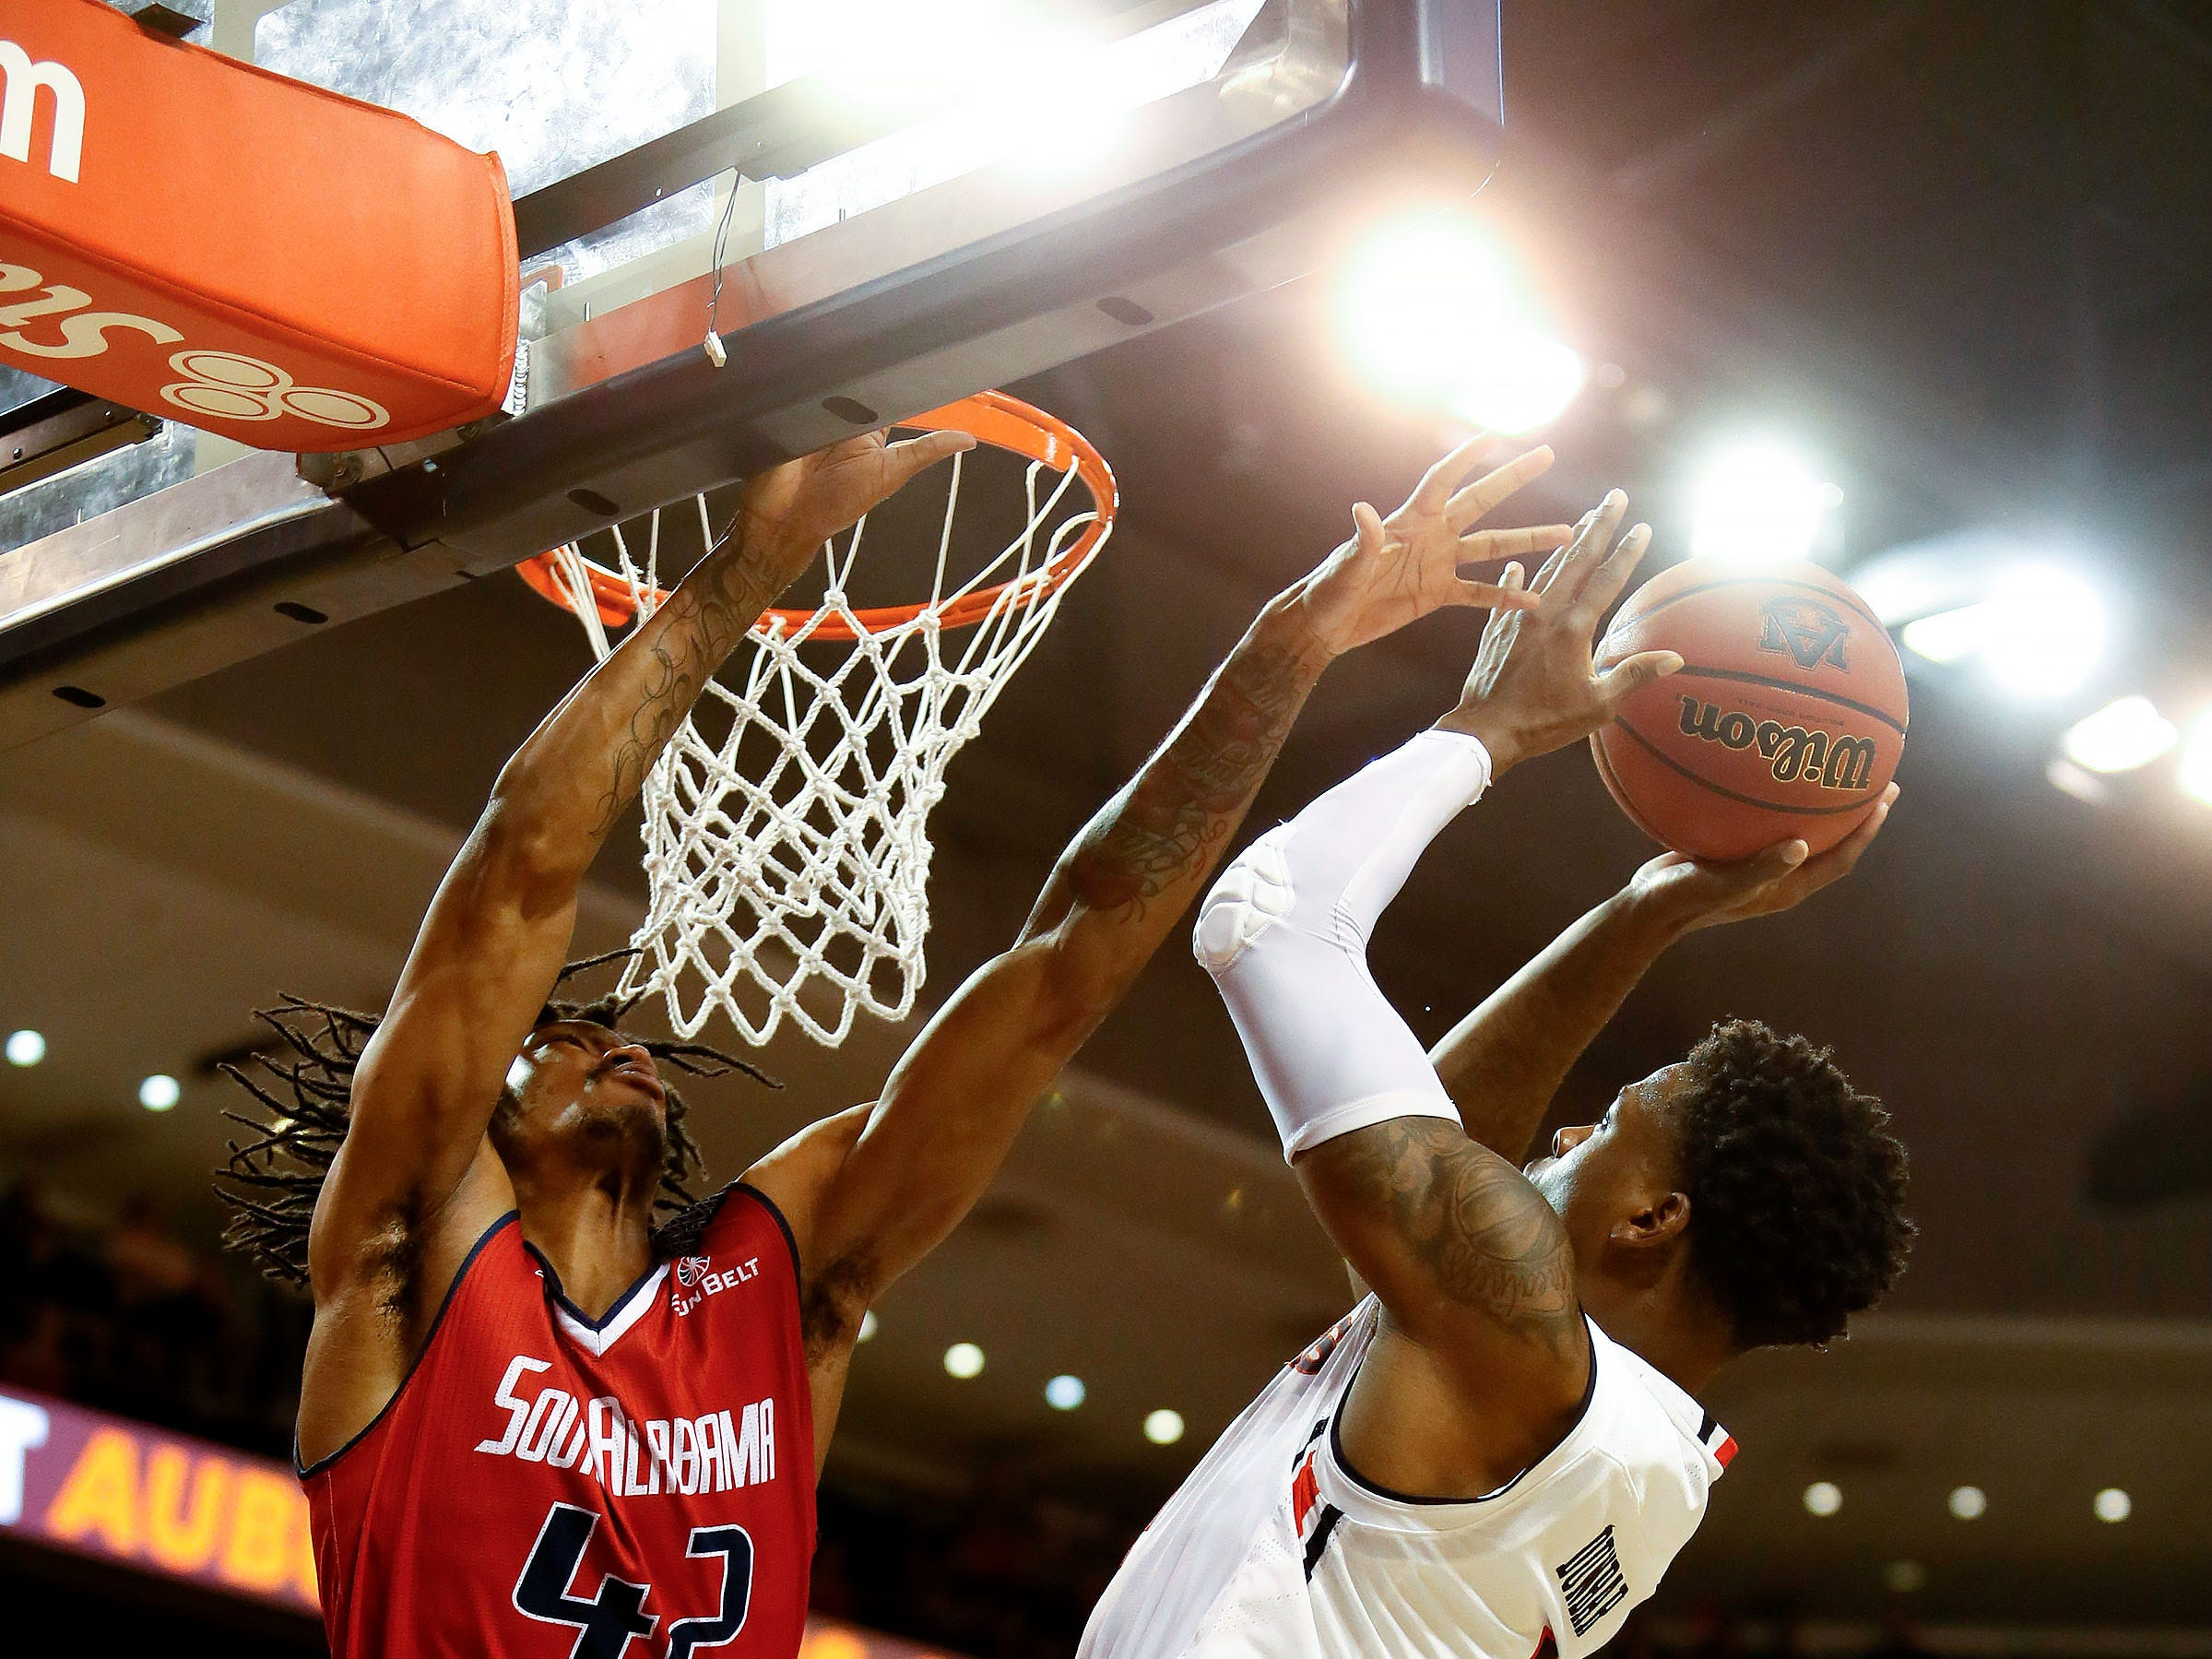 Nov 6, 2018; Auburn, AL, USA; Auburn Tigers guard Malik Dunbar (4) goes for a shot as South Alabama Jaguars forward Trhae Mitchell (42) defends during the second half at Auburn Arena. Mandatory Credit: John Reed-USA TODAY Sports